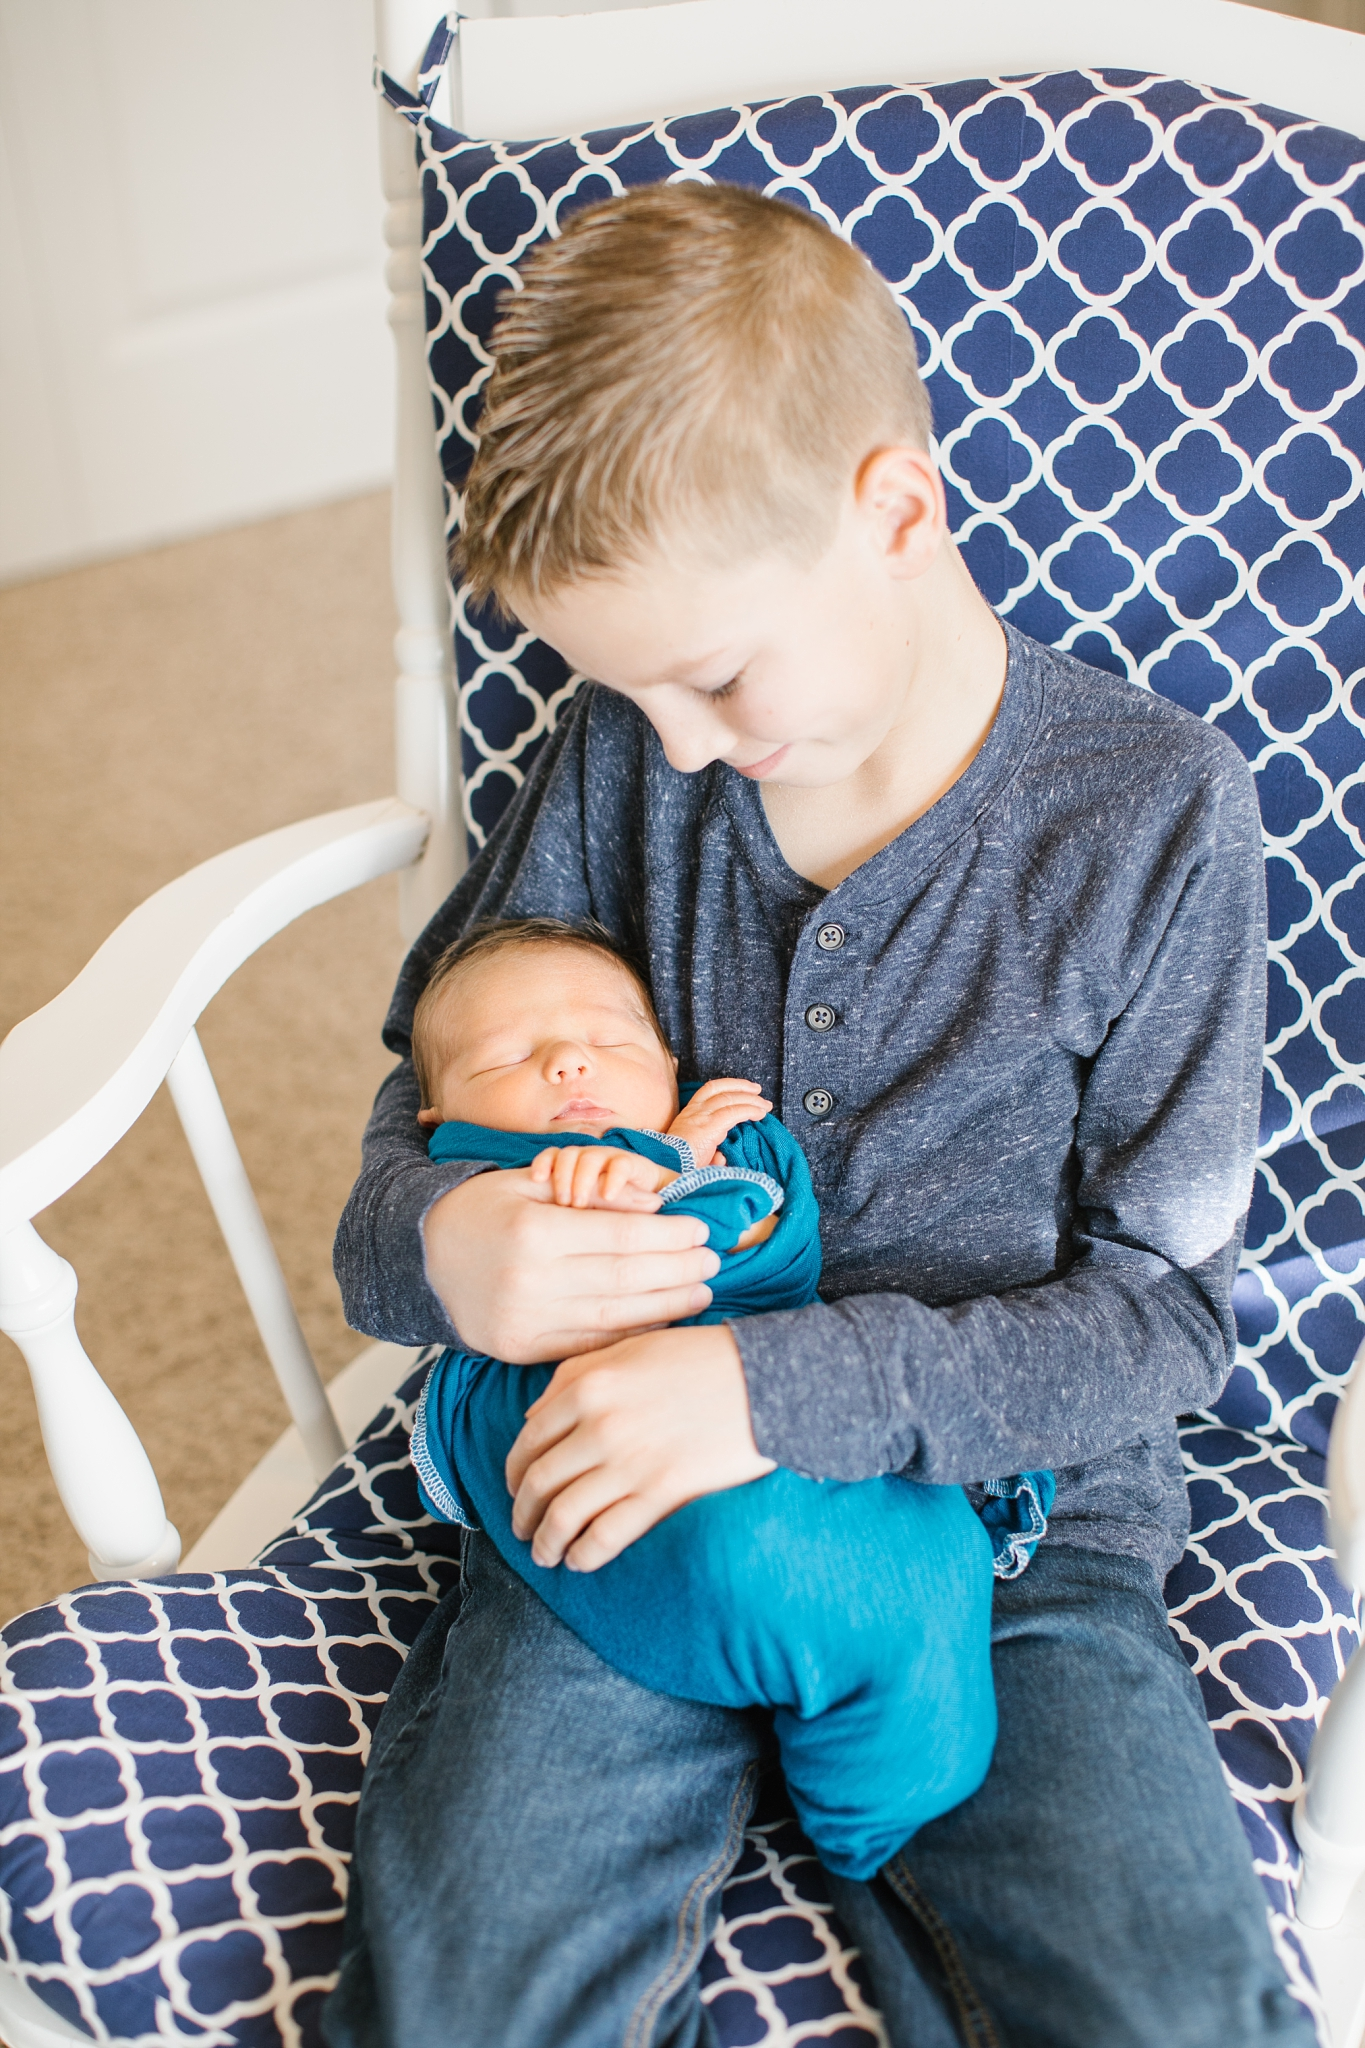 Marcus-29_Lizzie-B-Imagery-Utah-Family-Photographer-Lifestyle-Home-Photography-Salt-Lake-City-Park-City-Utah-County-Provo-Newborn-Photographer-Fresh-48-Session.jpg